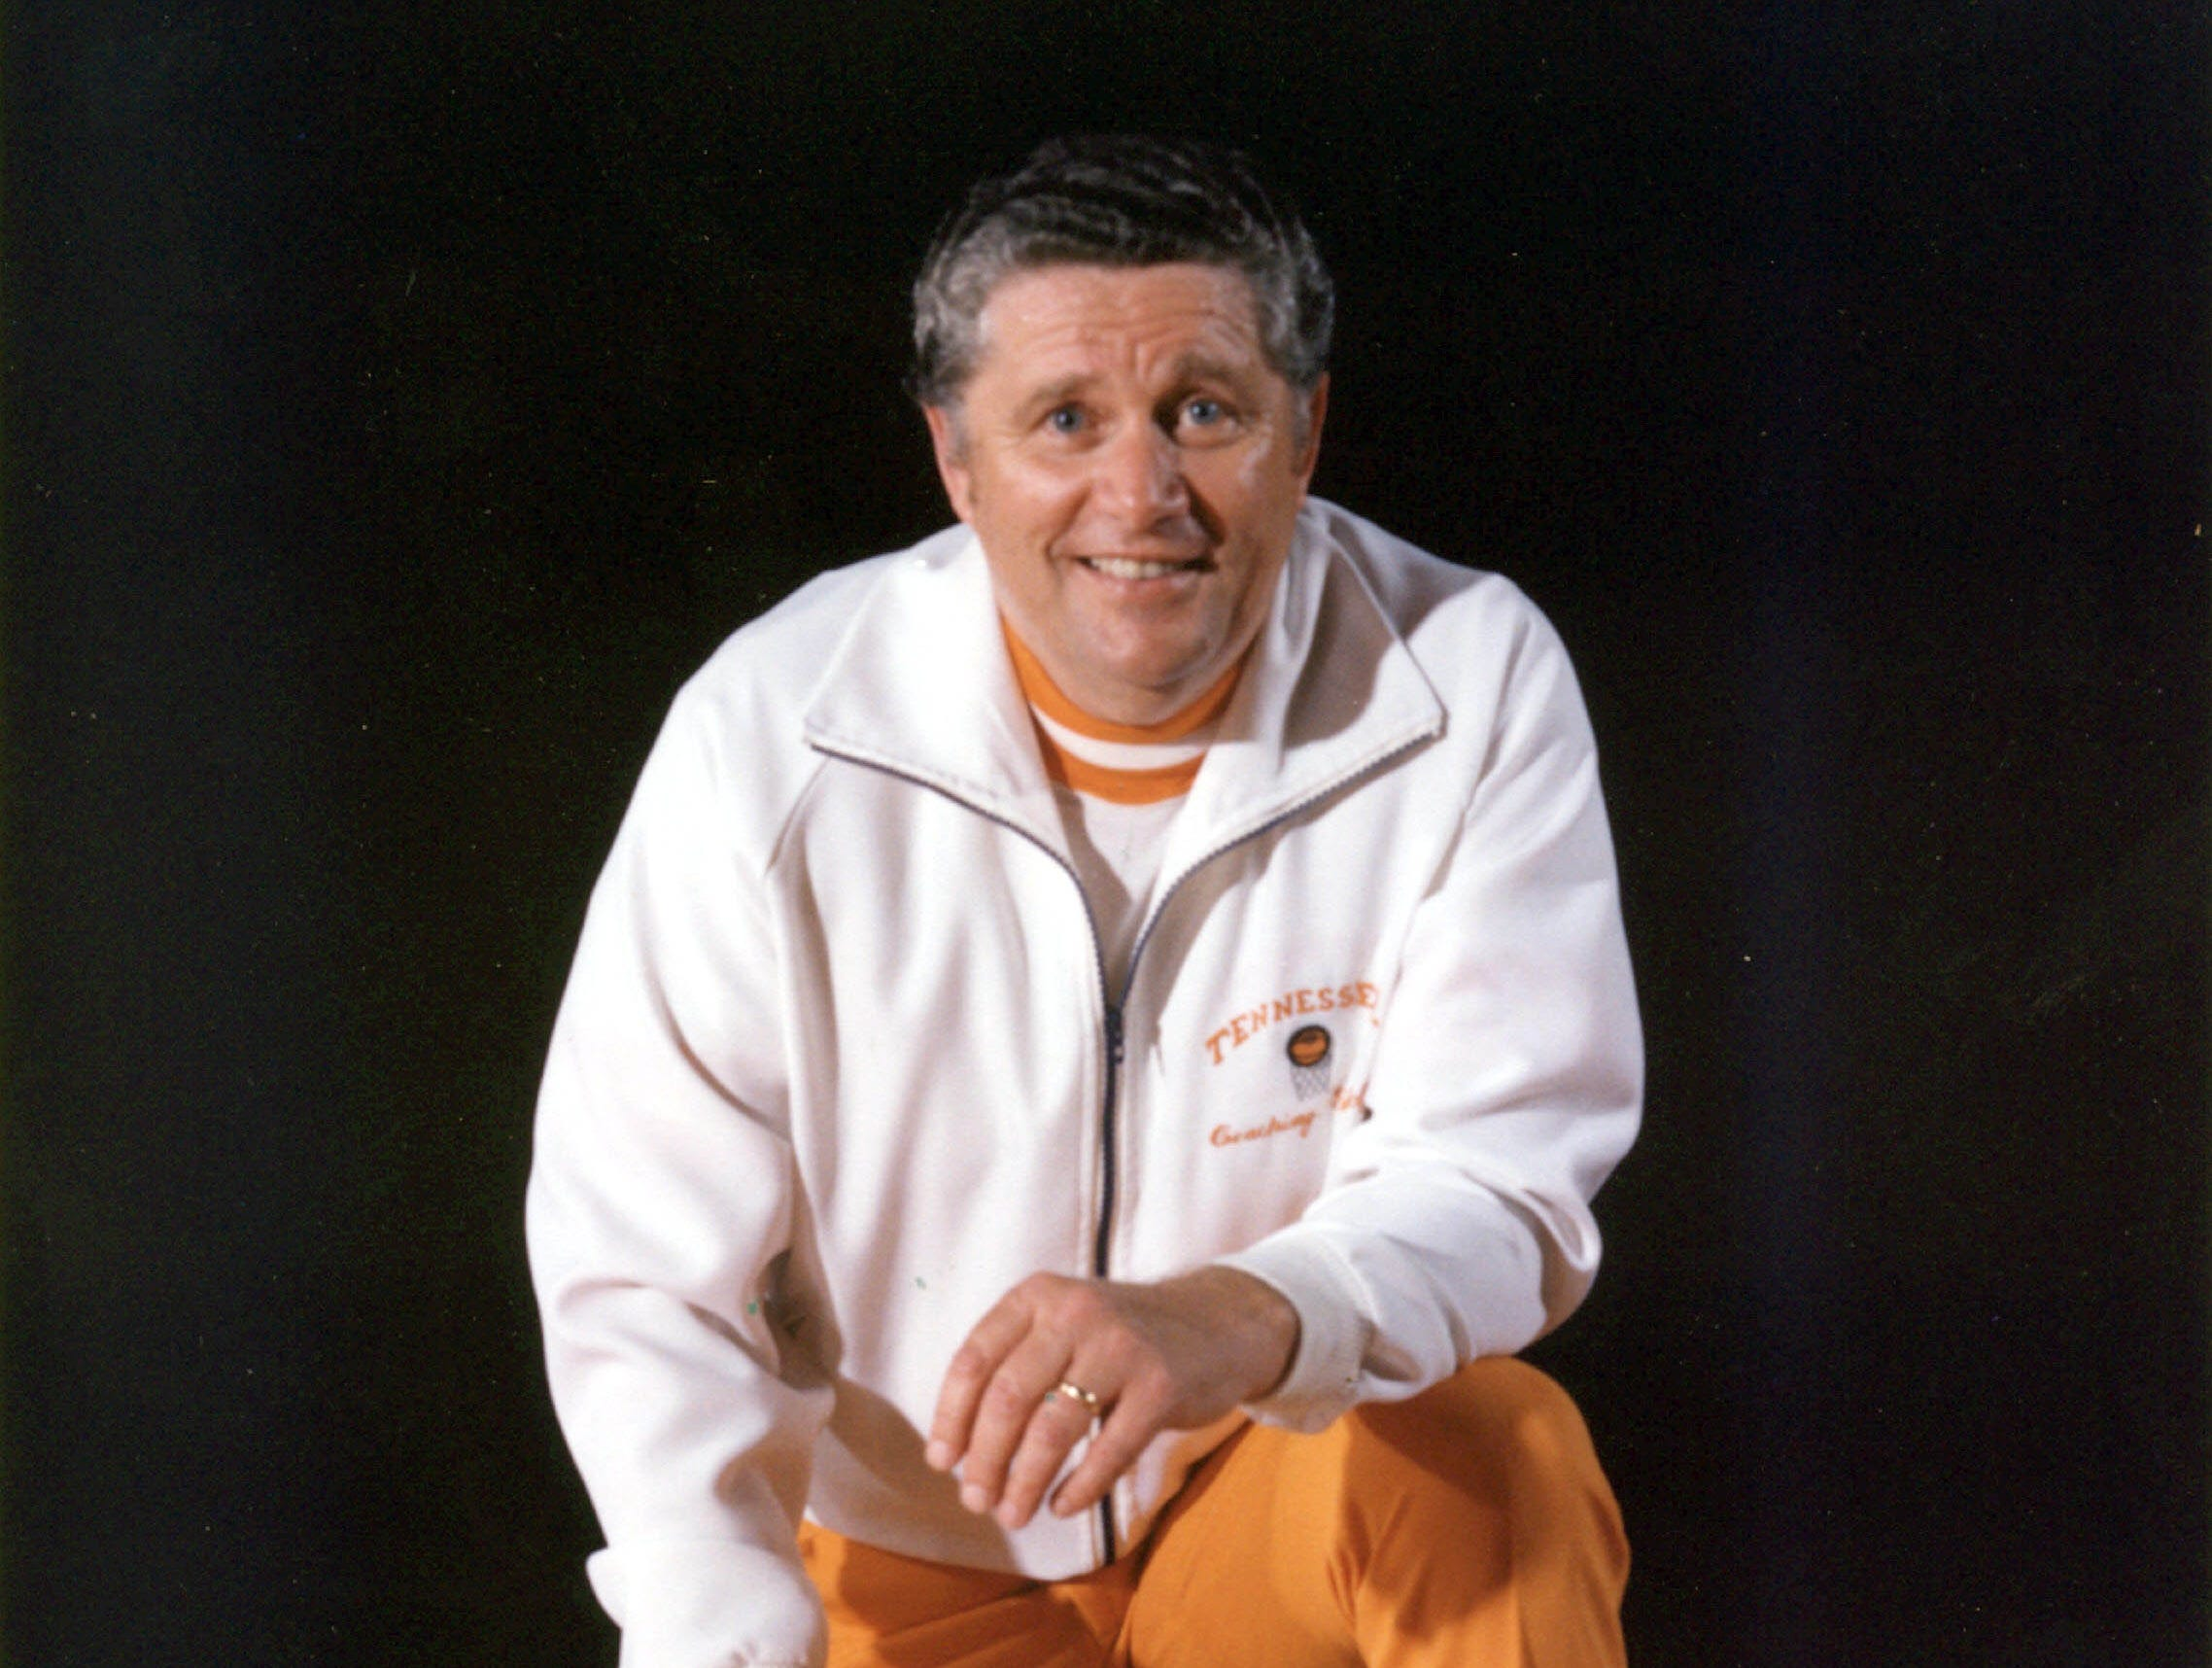 University of Tennessee basketball Coach Ray Mears in an undated photograph. Mears died at age 80 on June 11, 2007. Photo from UT.